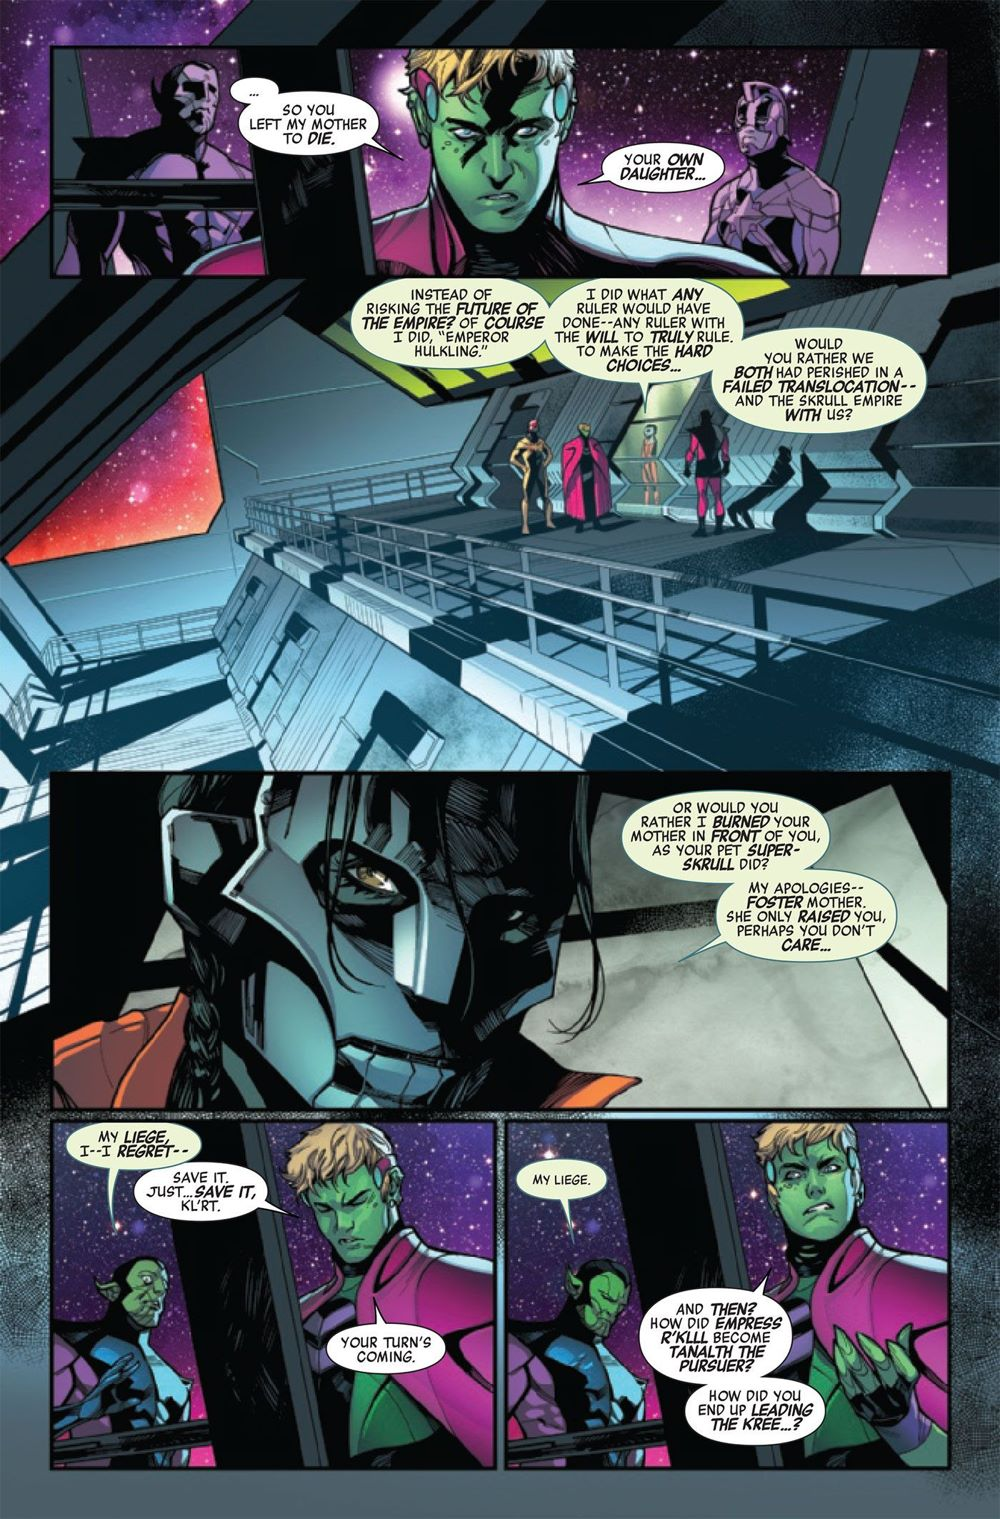 EMPYREAFTERAVEN2020001-Preview-3-1 ComicList Previews: EMPYRE AFTERMATH AVENGERS #1